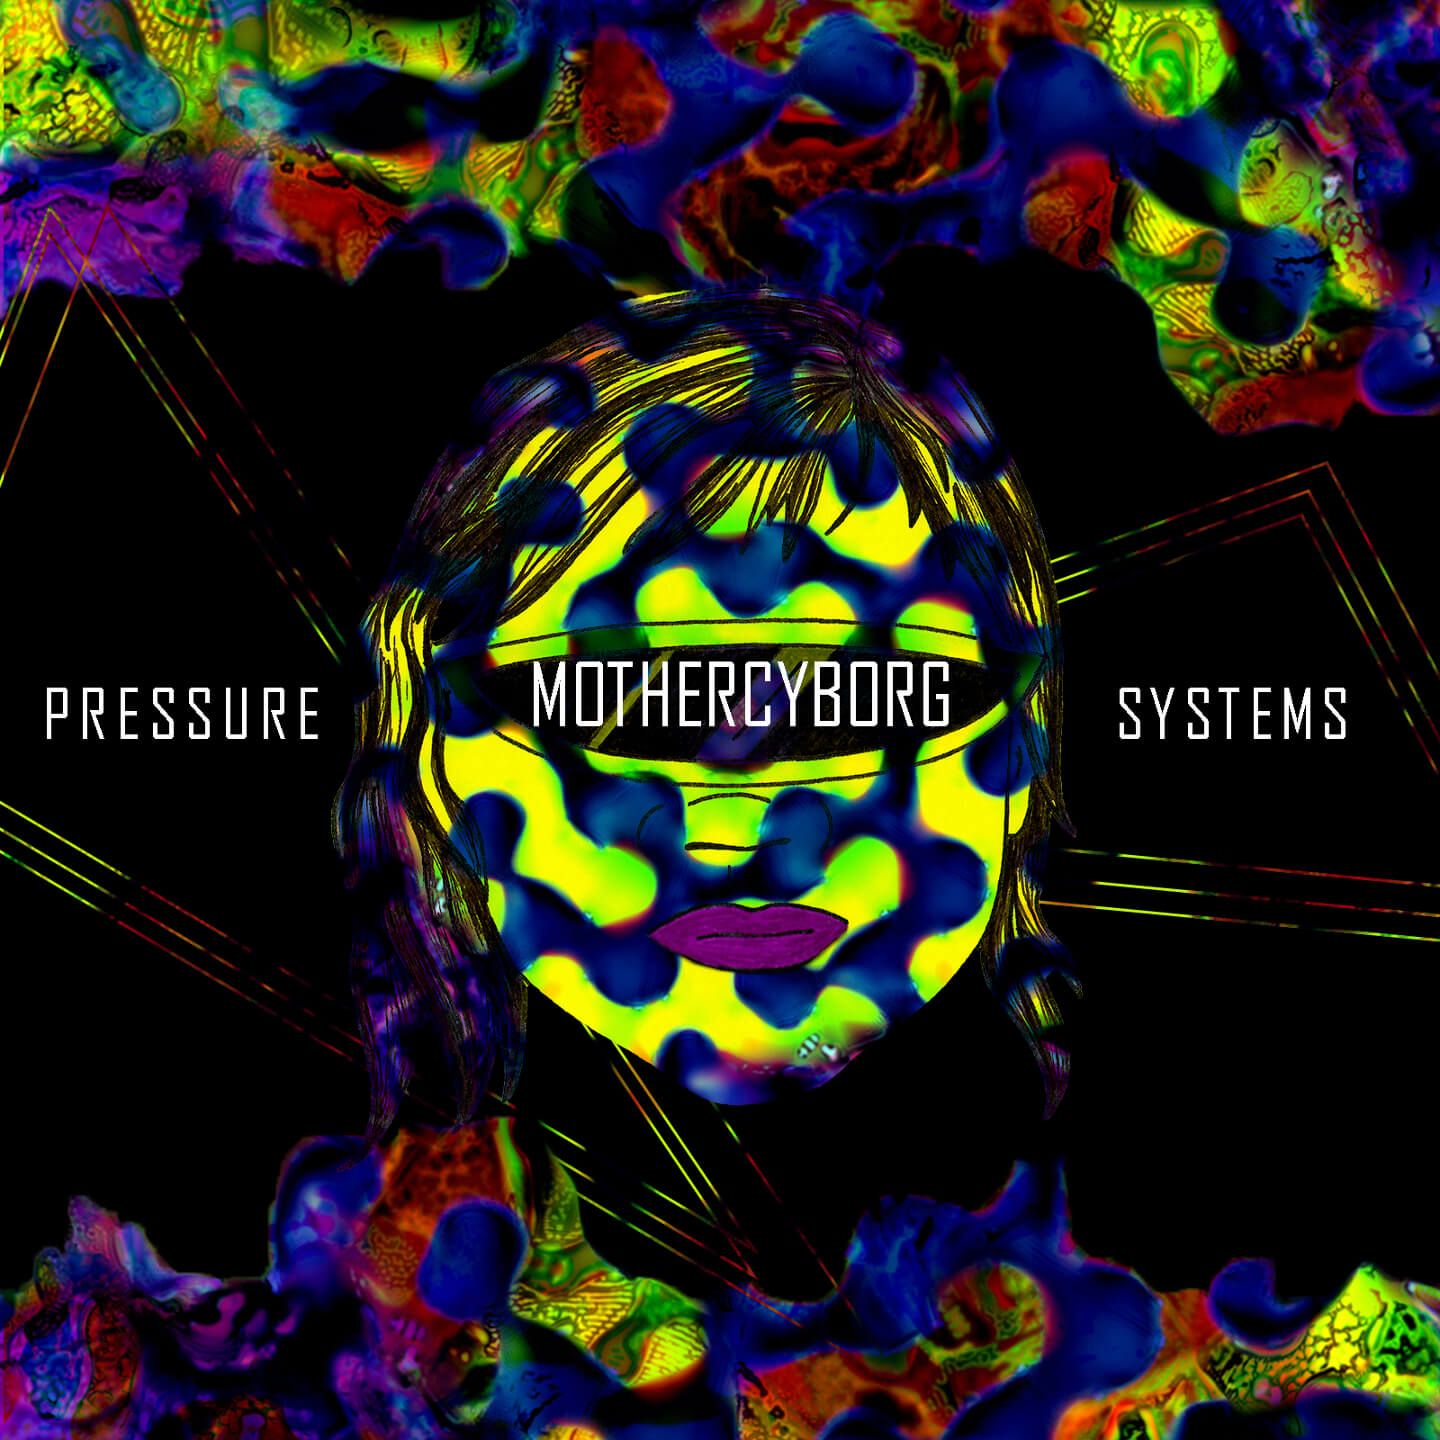 MOTHER_CYBORG_Pressure_Systems_PinkLizardMusic_medium.jpg